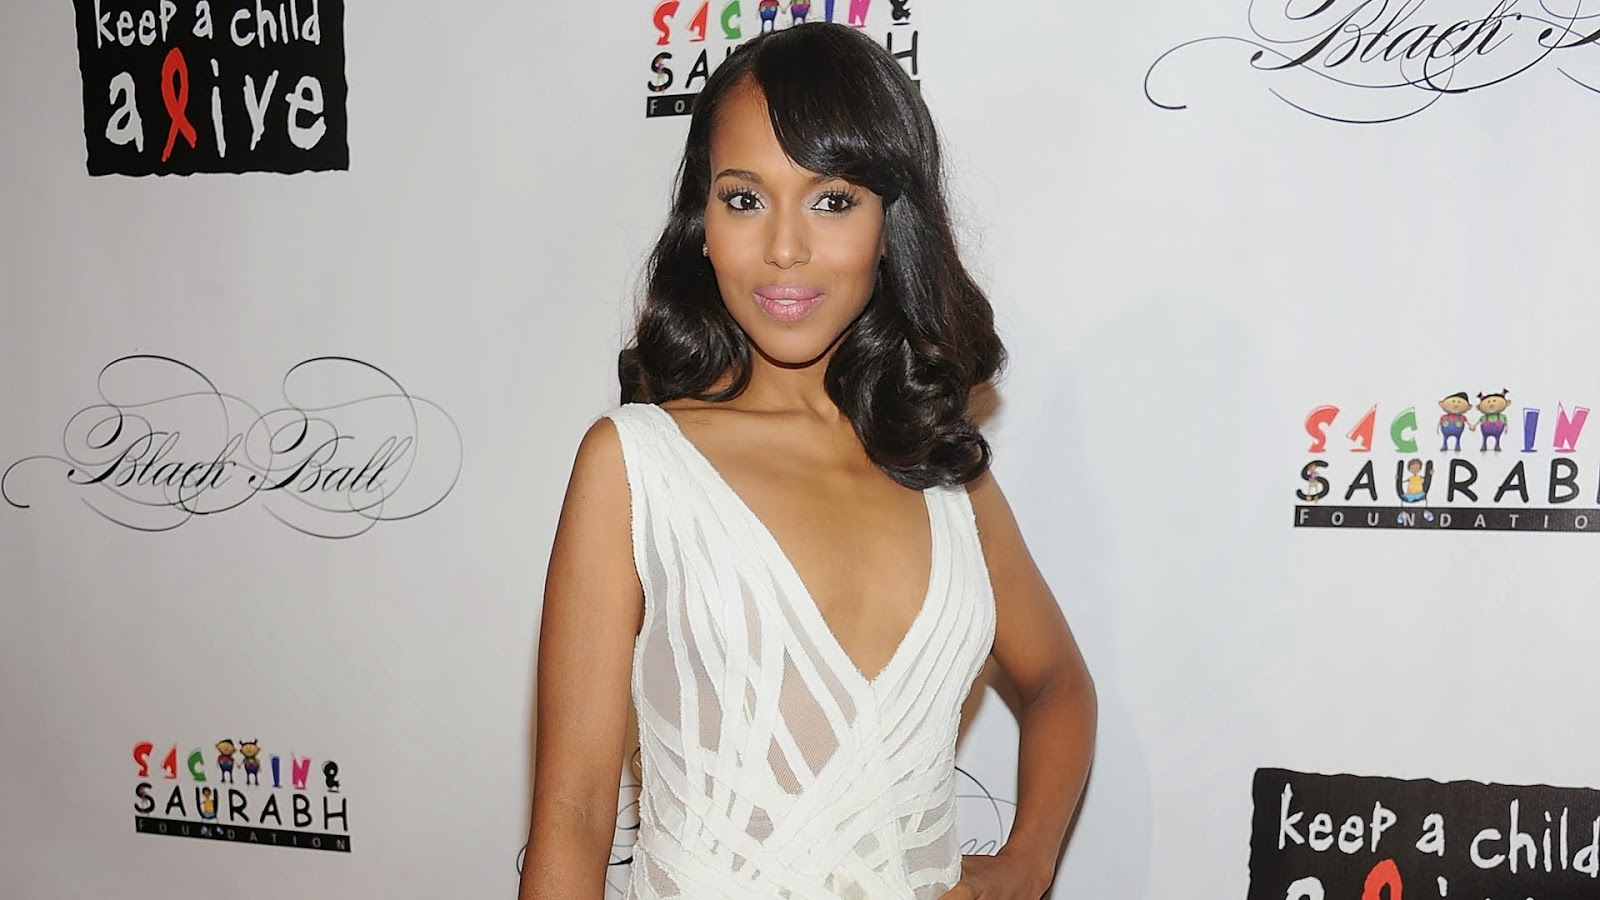 Kerry Washington Mujeres mas bellas del 2013